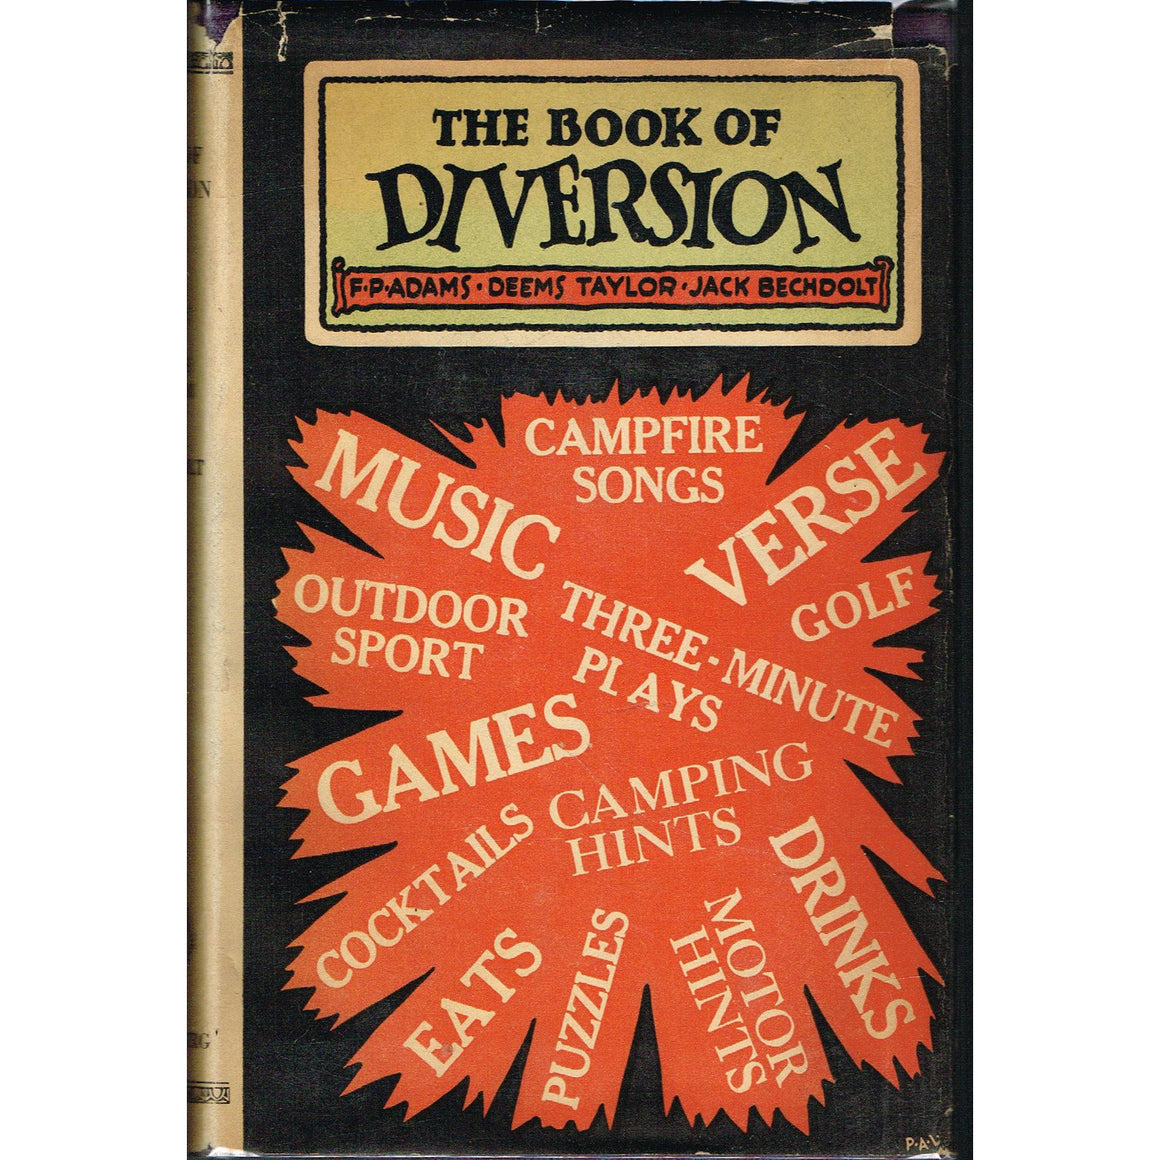 The Book of Diversion